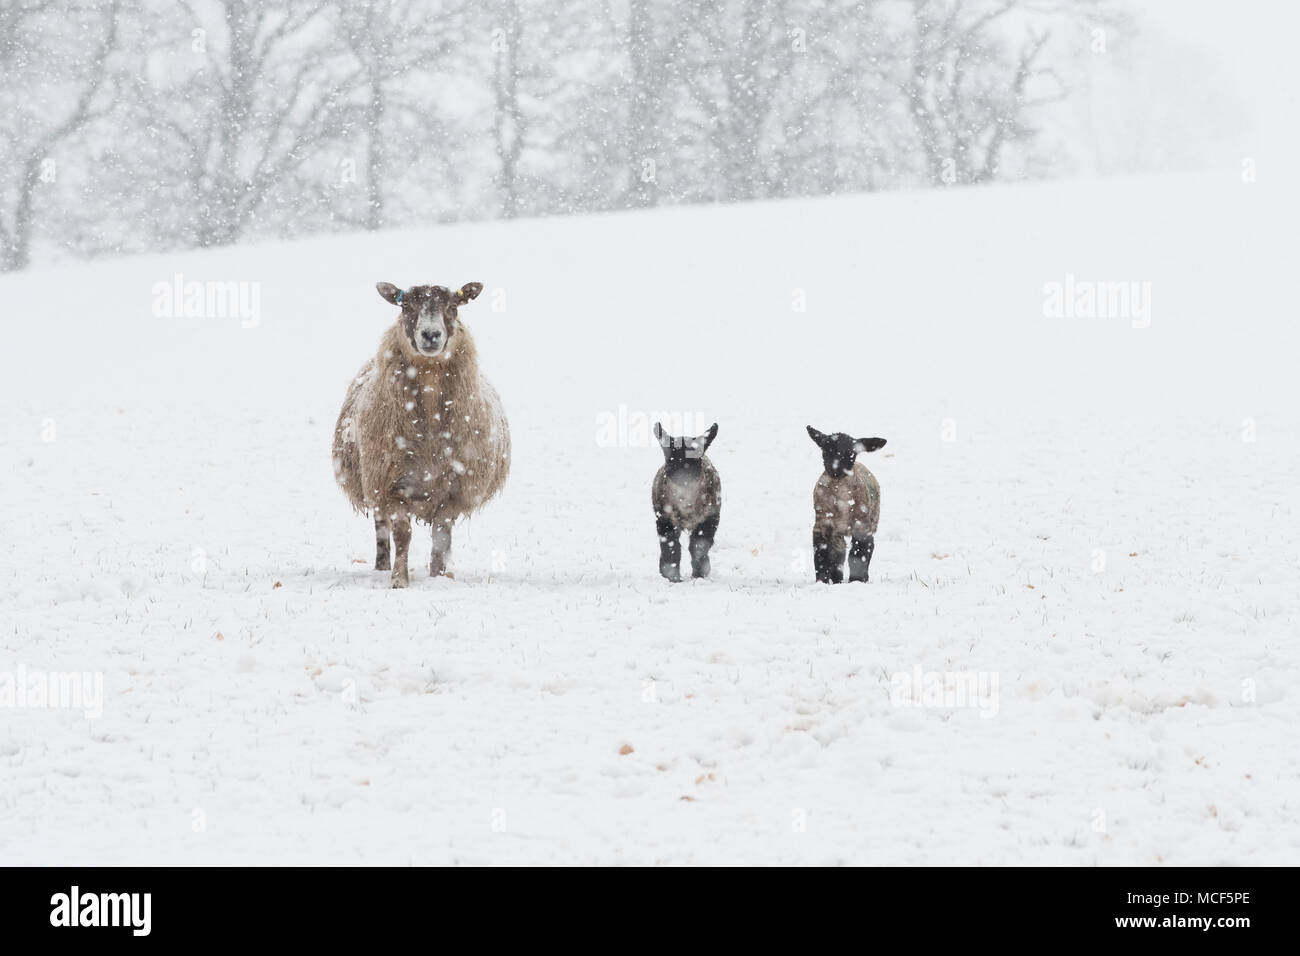 Ewe and two lambs in snow - Stock Image